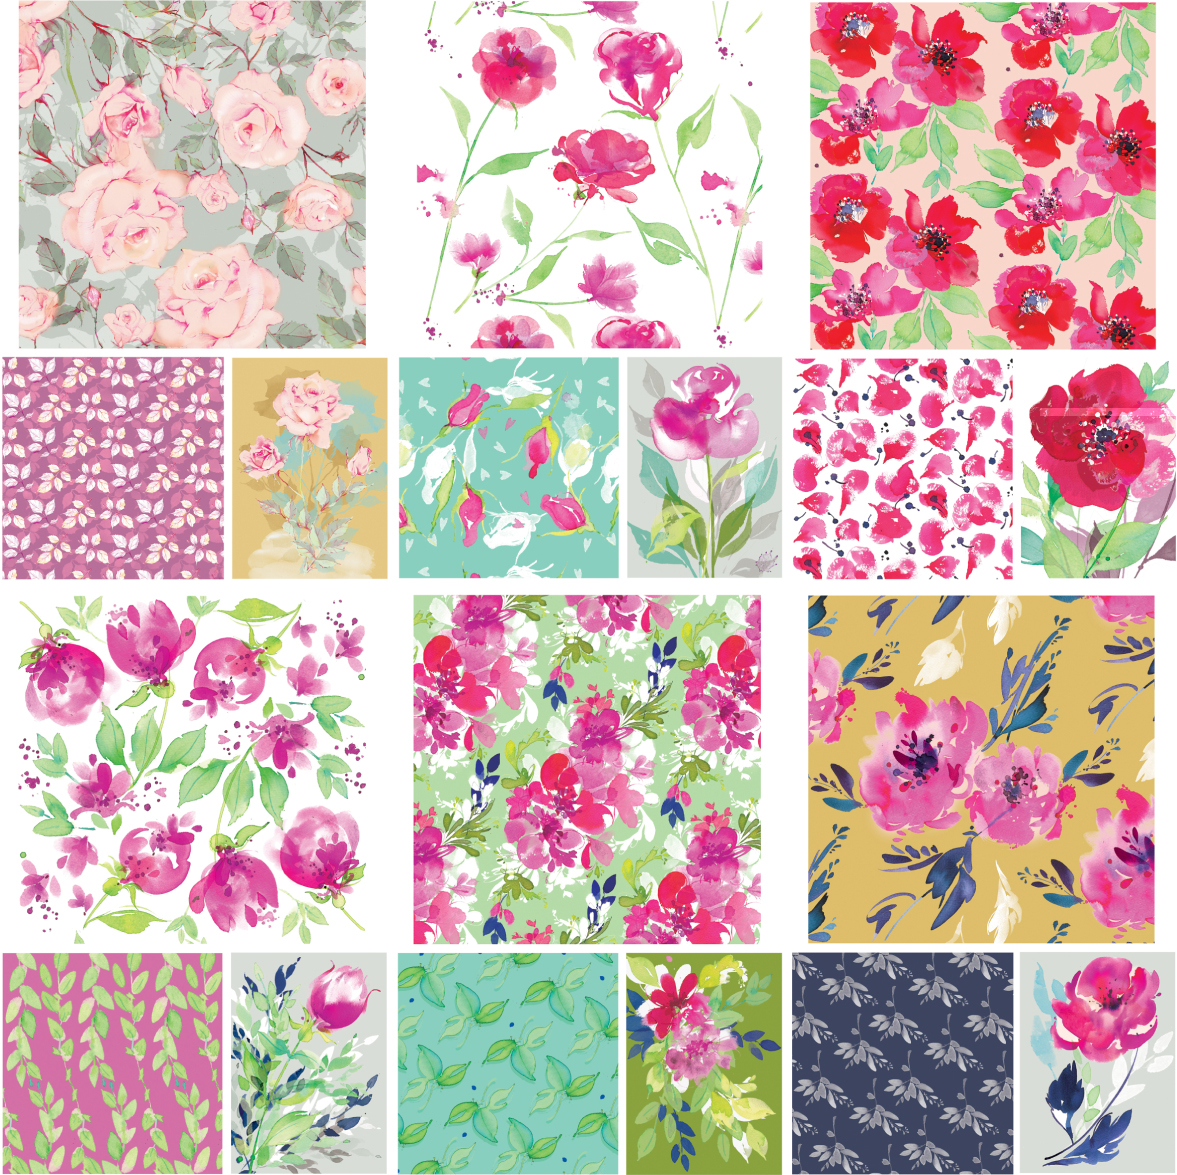 Beautiful florals Jane Dodds